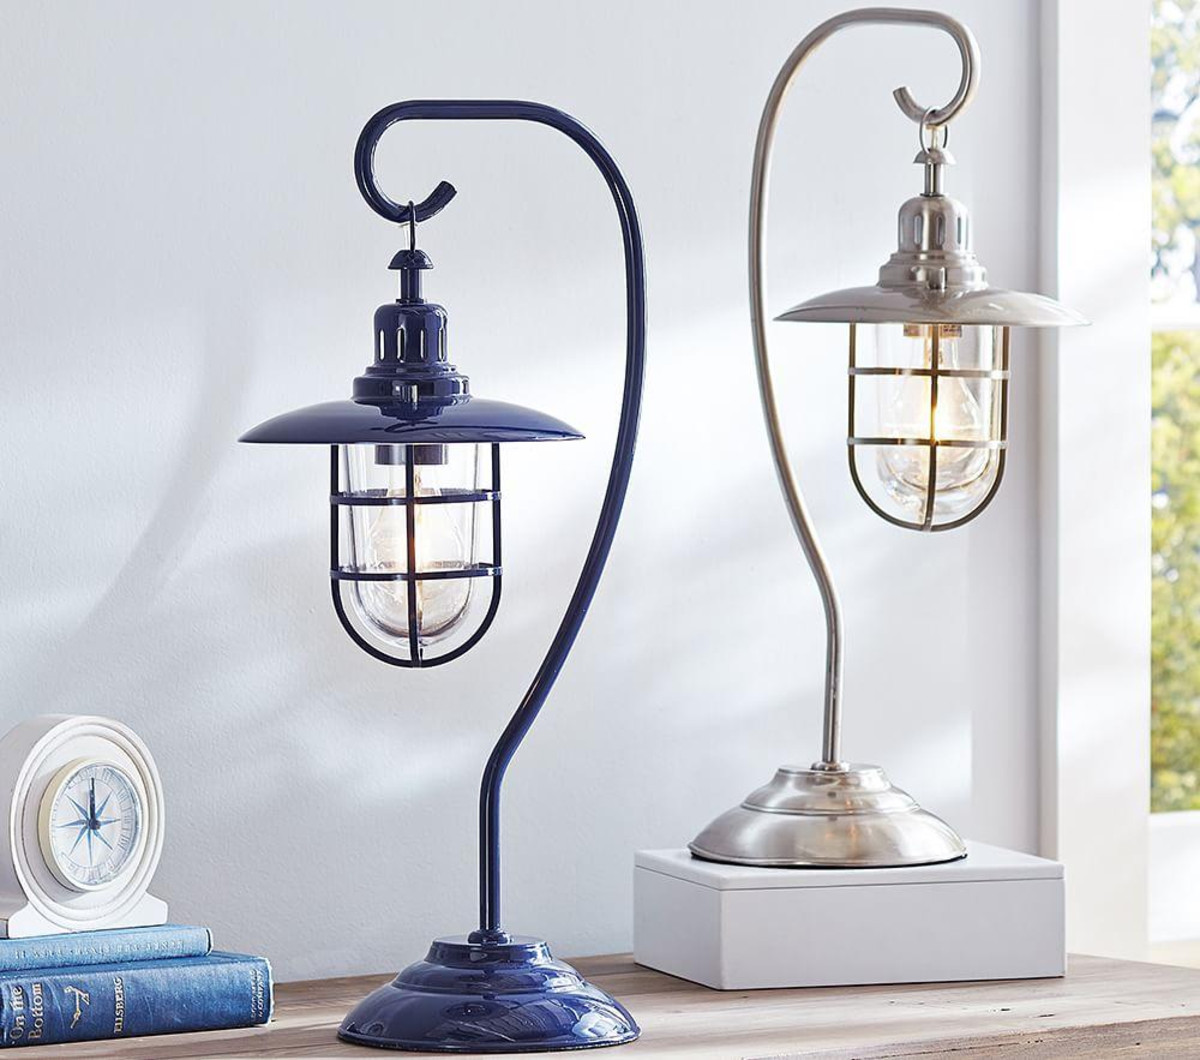 Best ideas about Kid Desk Lamps . Save or Pin Fisherman Table Lamp Now.